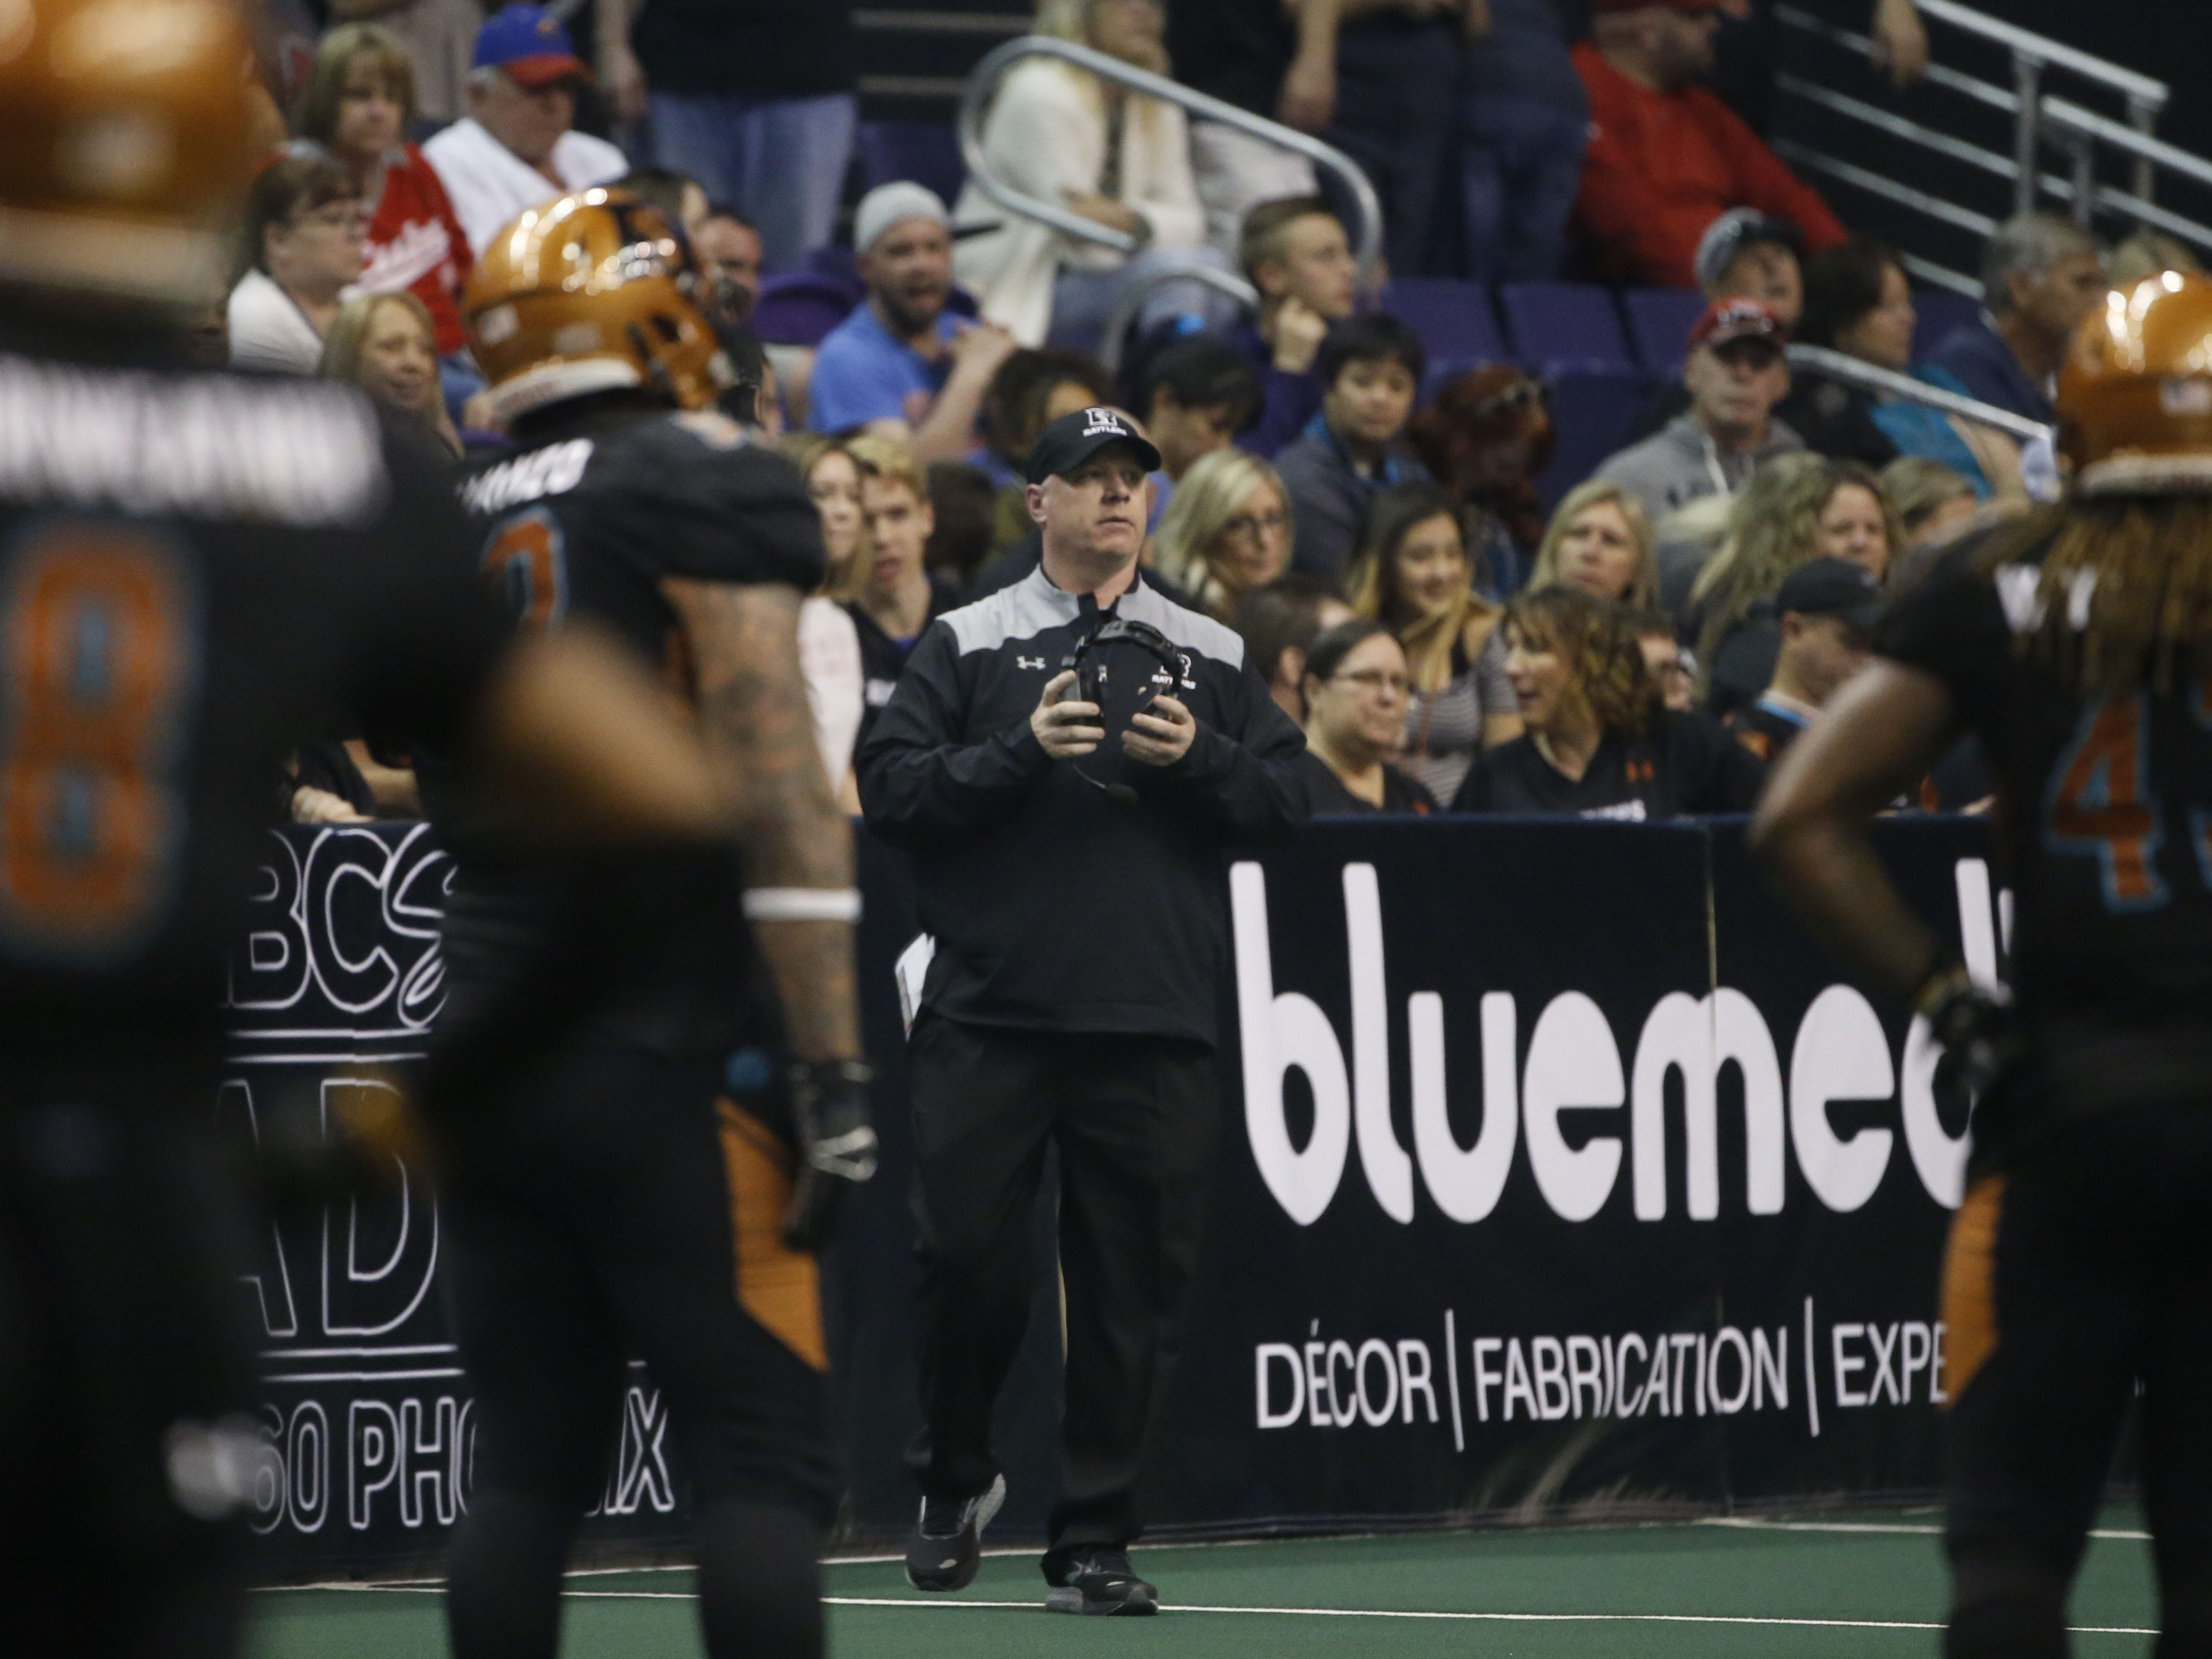 Rattlers' head coach Kevin Guy looks at his defense during the second half against the Sugar Skulls at Talking Stick Resort Arena in Phoenix, Ariz. on March 16, 2019.